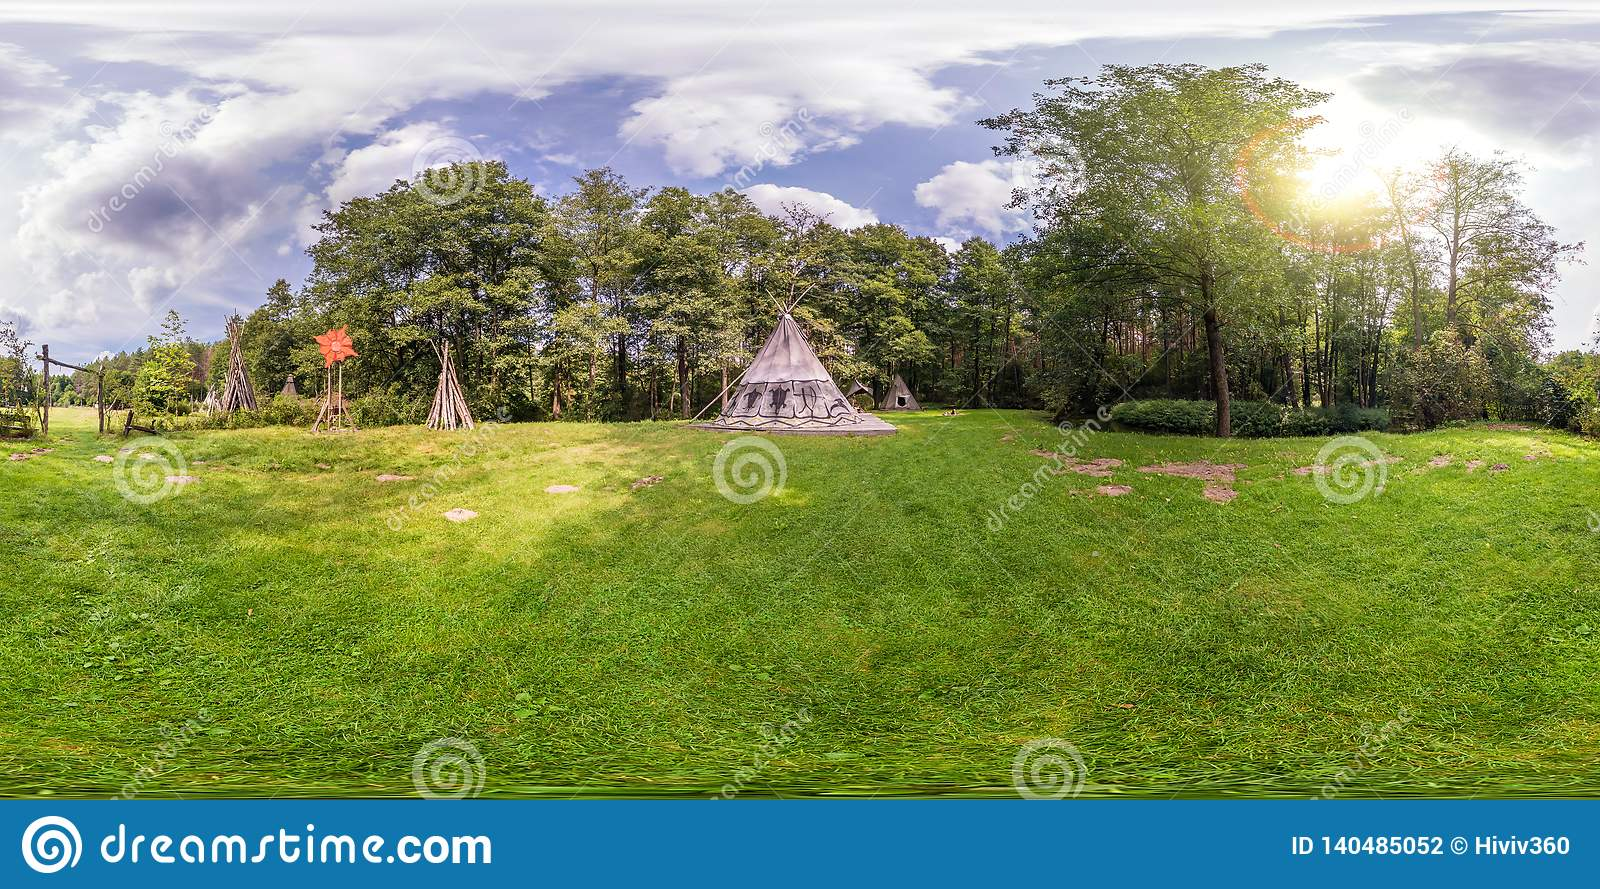 Full seamless spherical panorama 360 by 180 angle view near wigwam in the Indian village in forest in equirectangular projection,